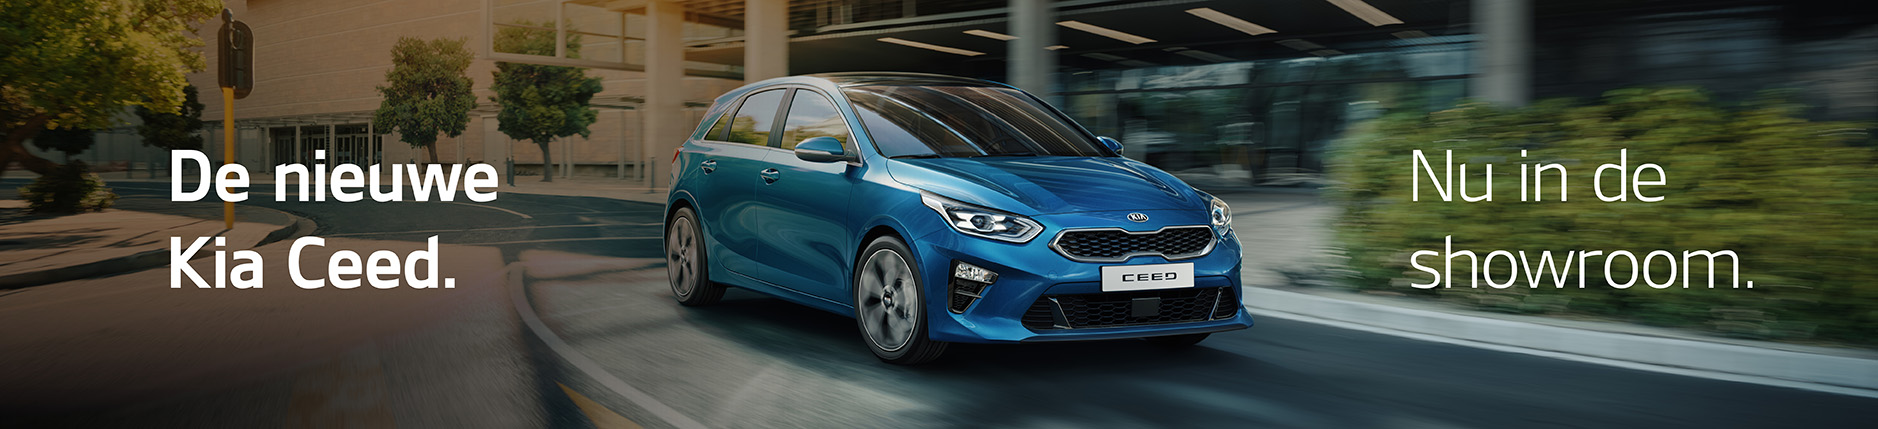 Nieuwe Kia Ceed in showroom